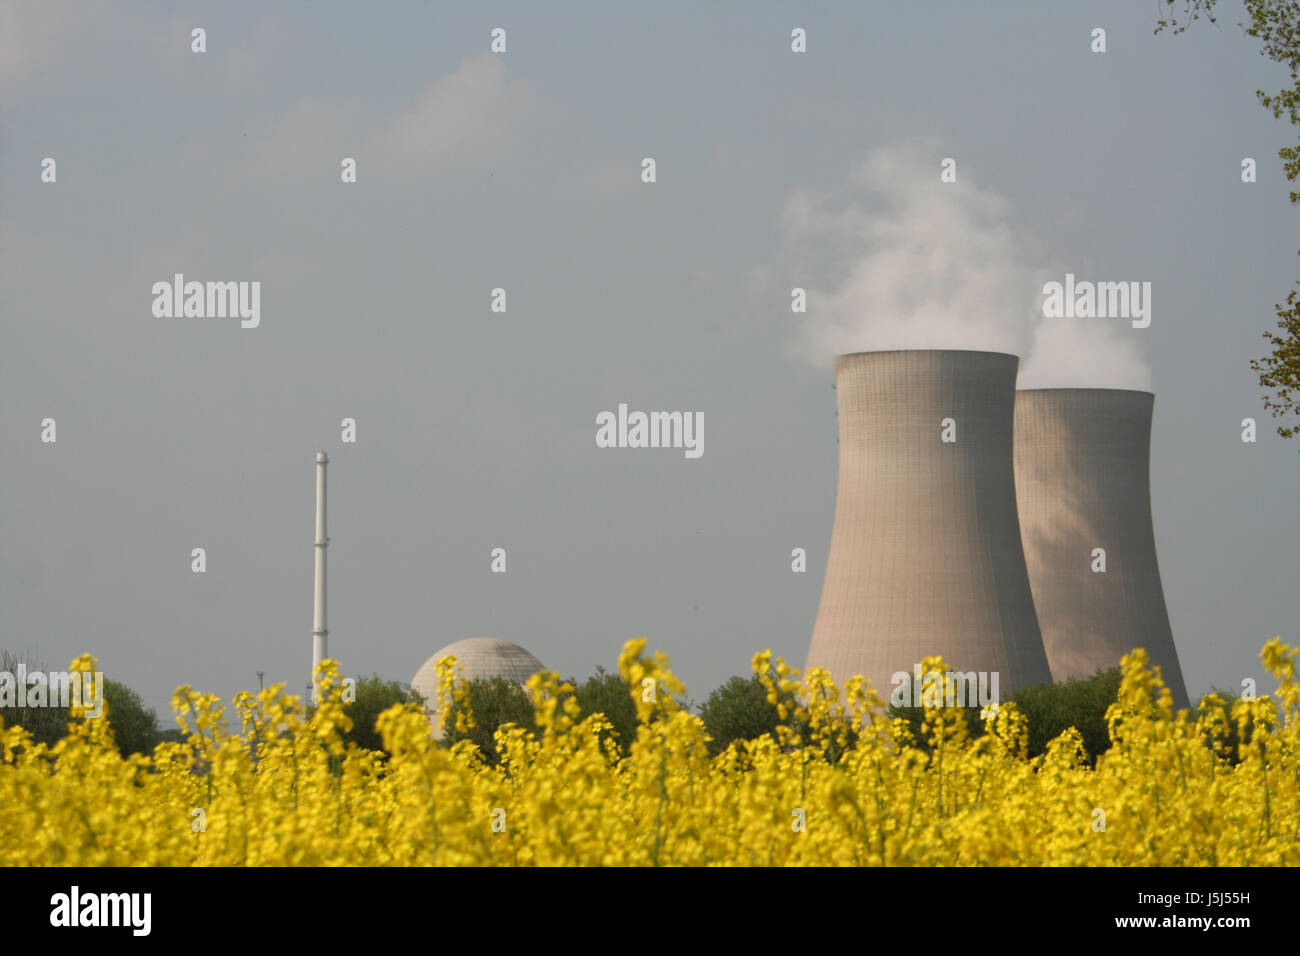 environment enviroment bucolic tree trees dome power station cooling tower - Stock Image